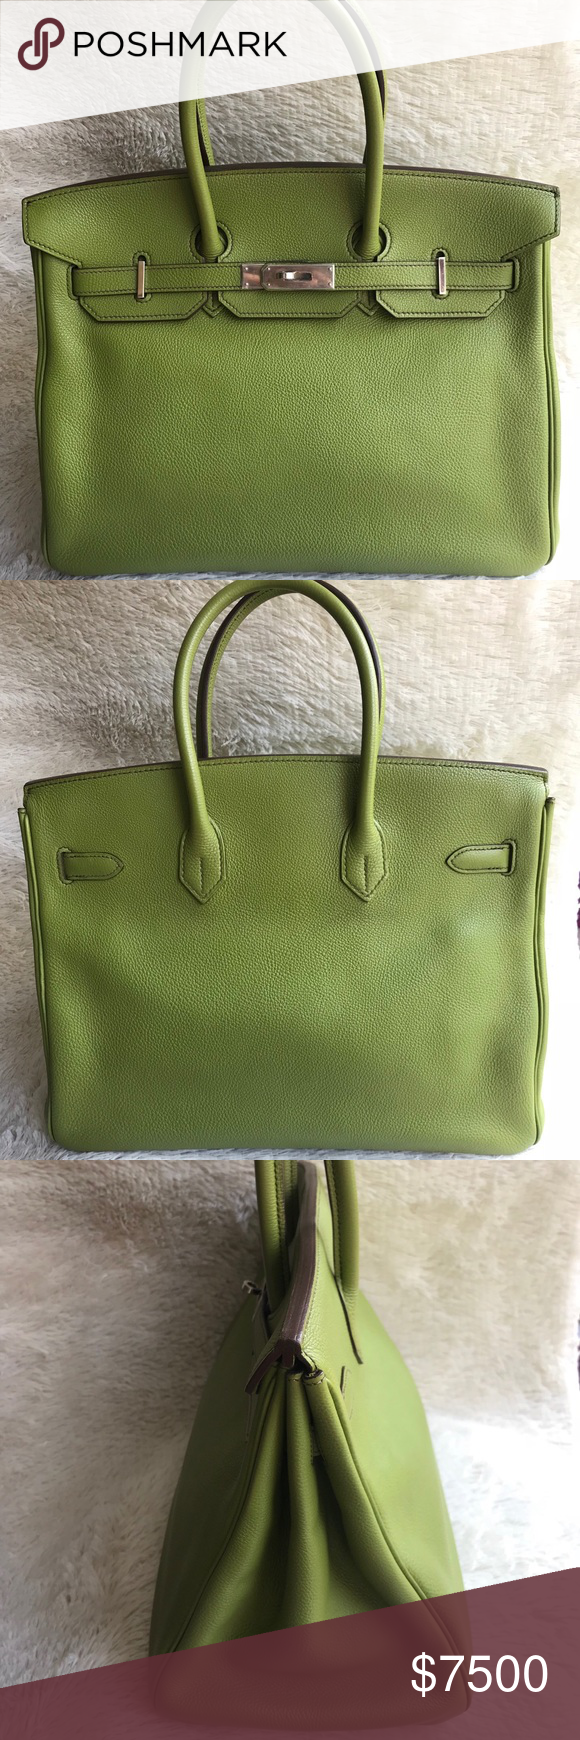 6c0f7a71b2 Authentic Hermes Birkin 35 Vert Anis Togo Gold In good pre-owned condition.  Clean interior   exterior no scratches at 4 corners. Togo leather gold  hardware ...